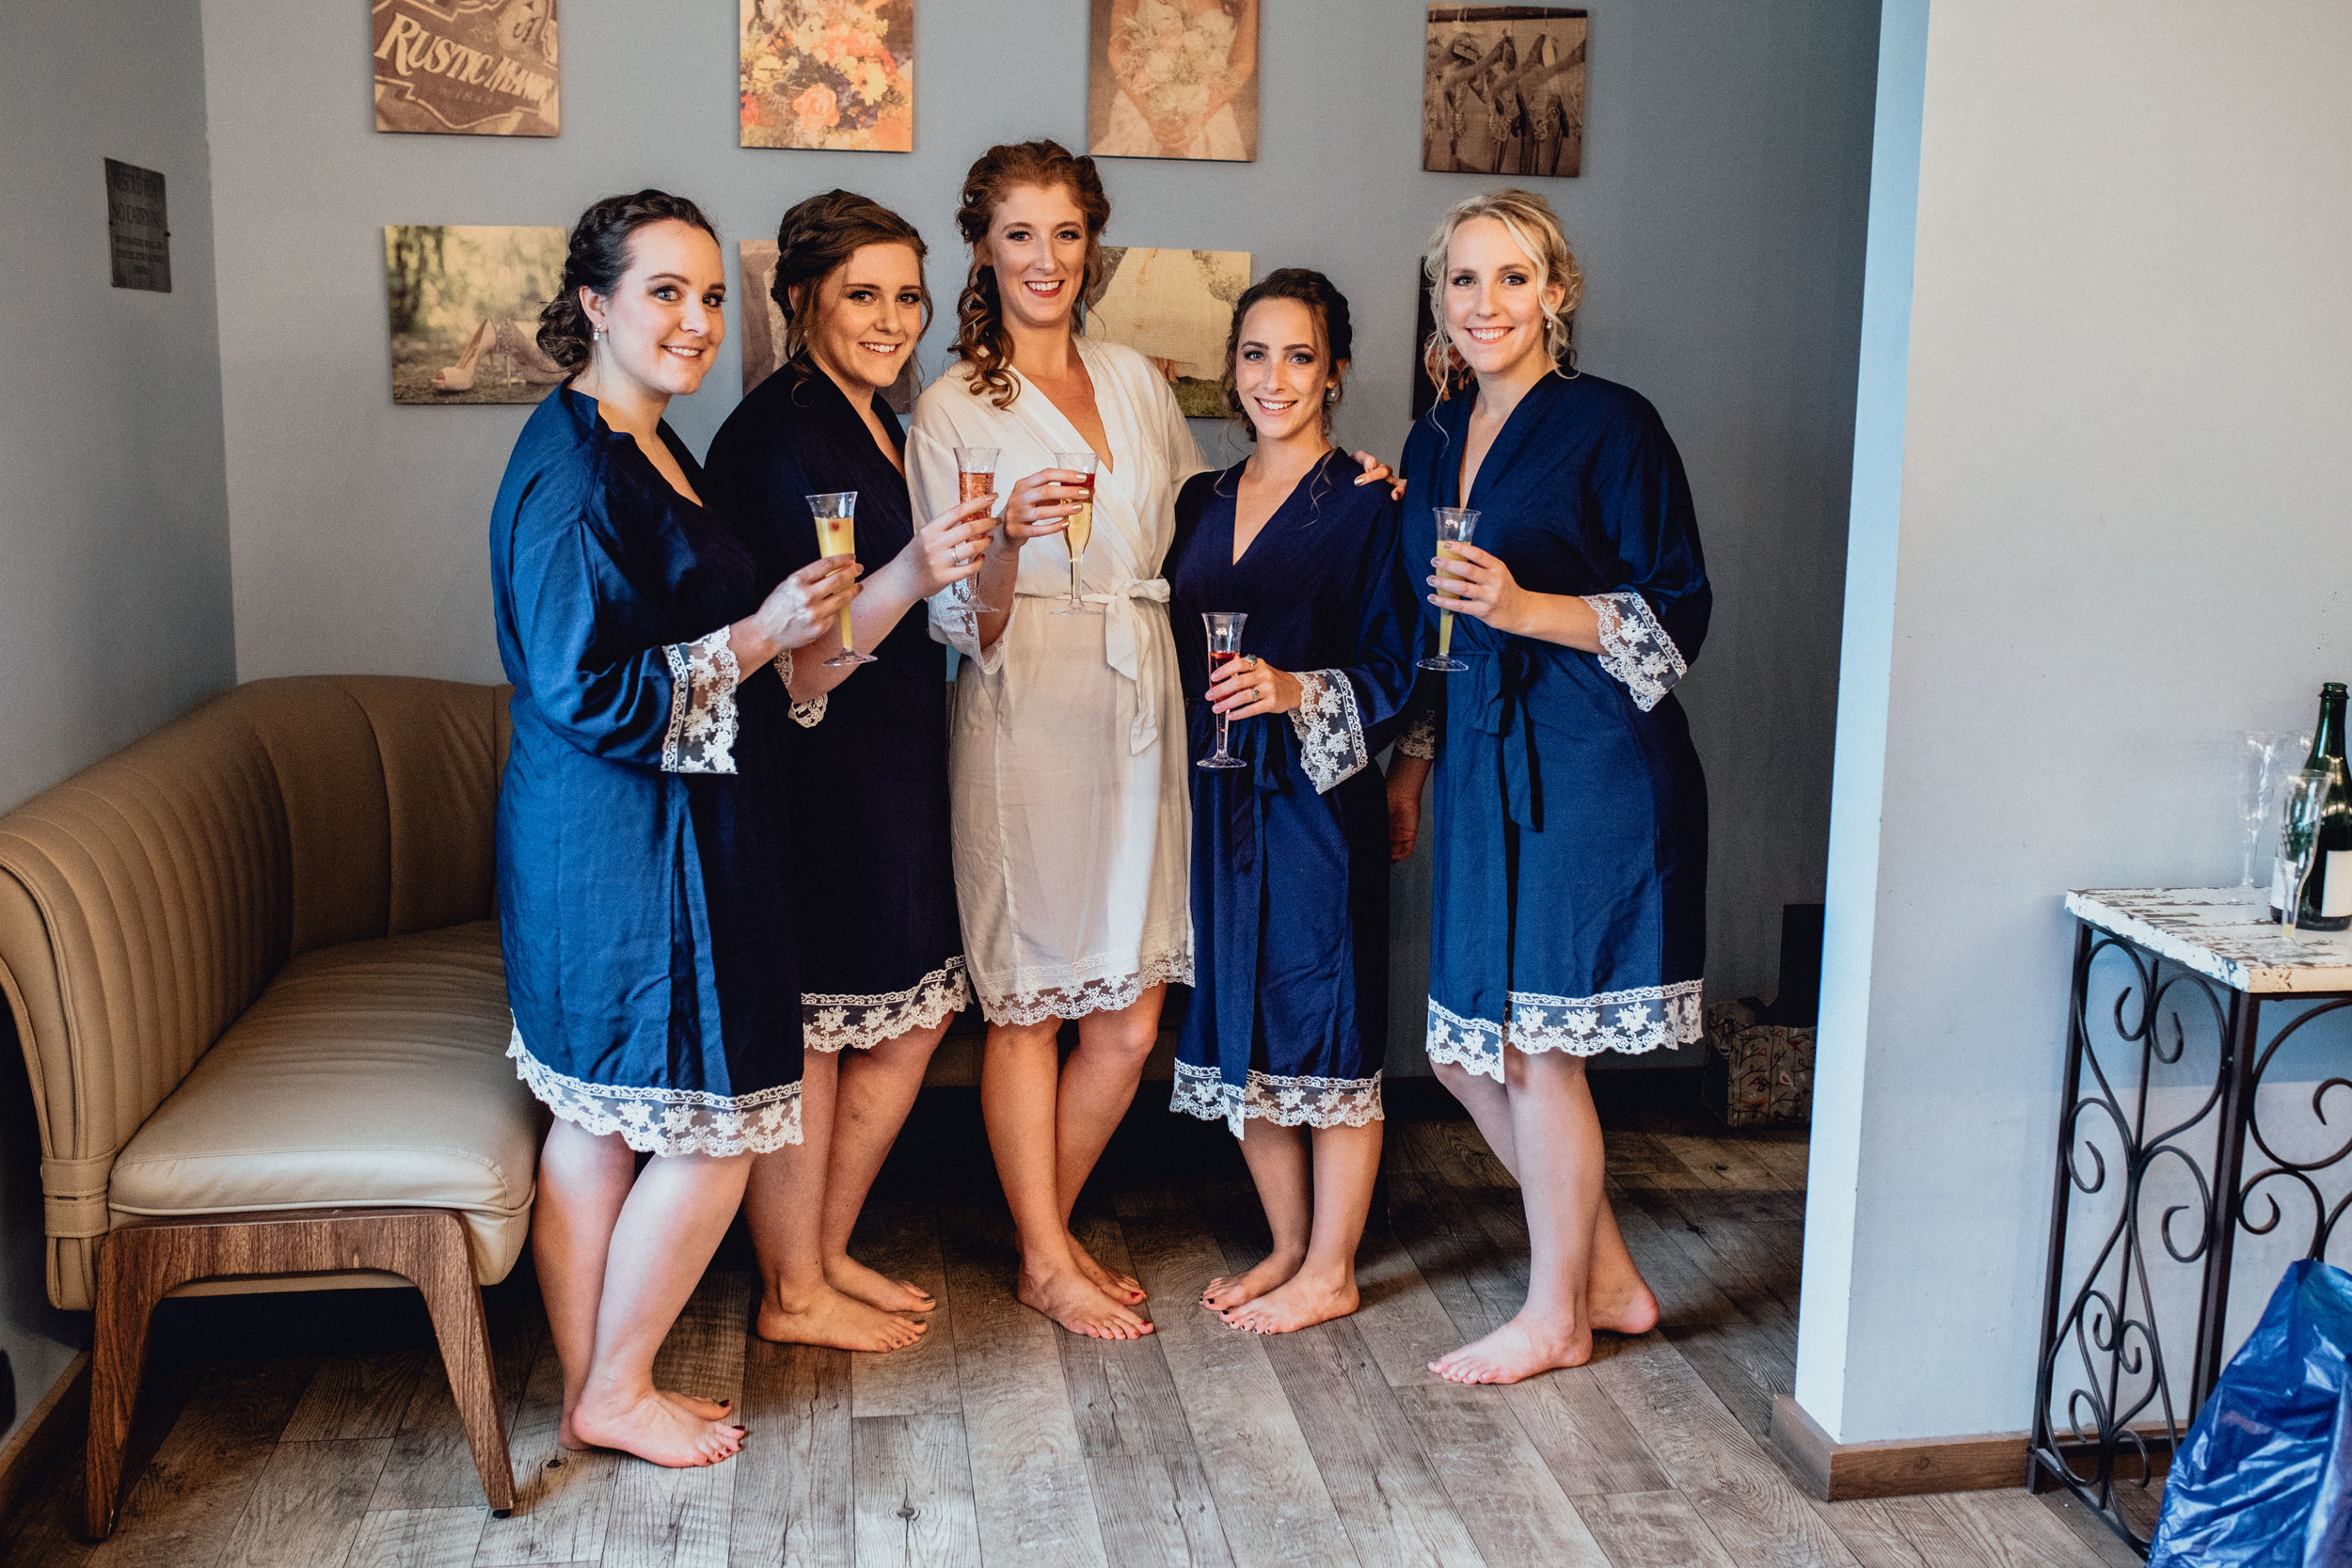 bride-and-bridesmaid-cheers-in-robes-in-bridal-suite-at-RUSTIC-MANOR-1848.jpg